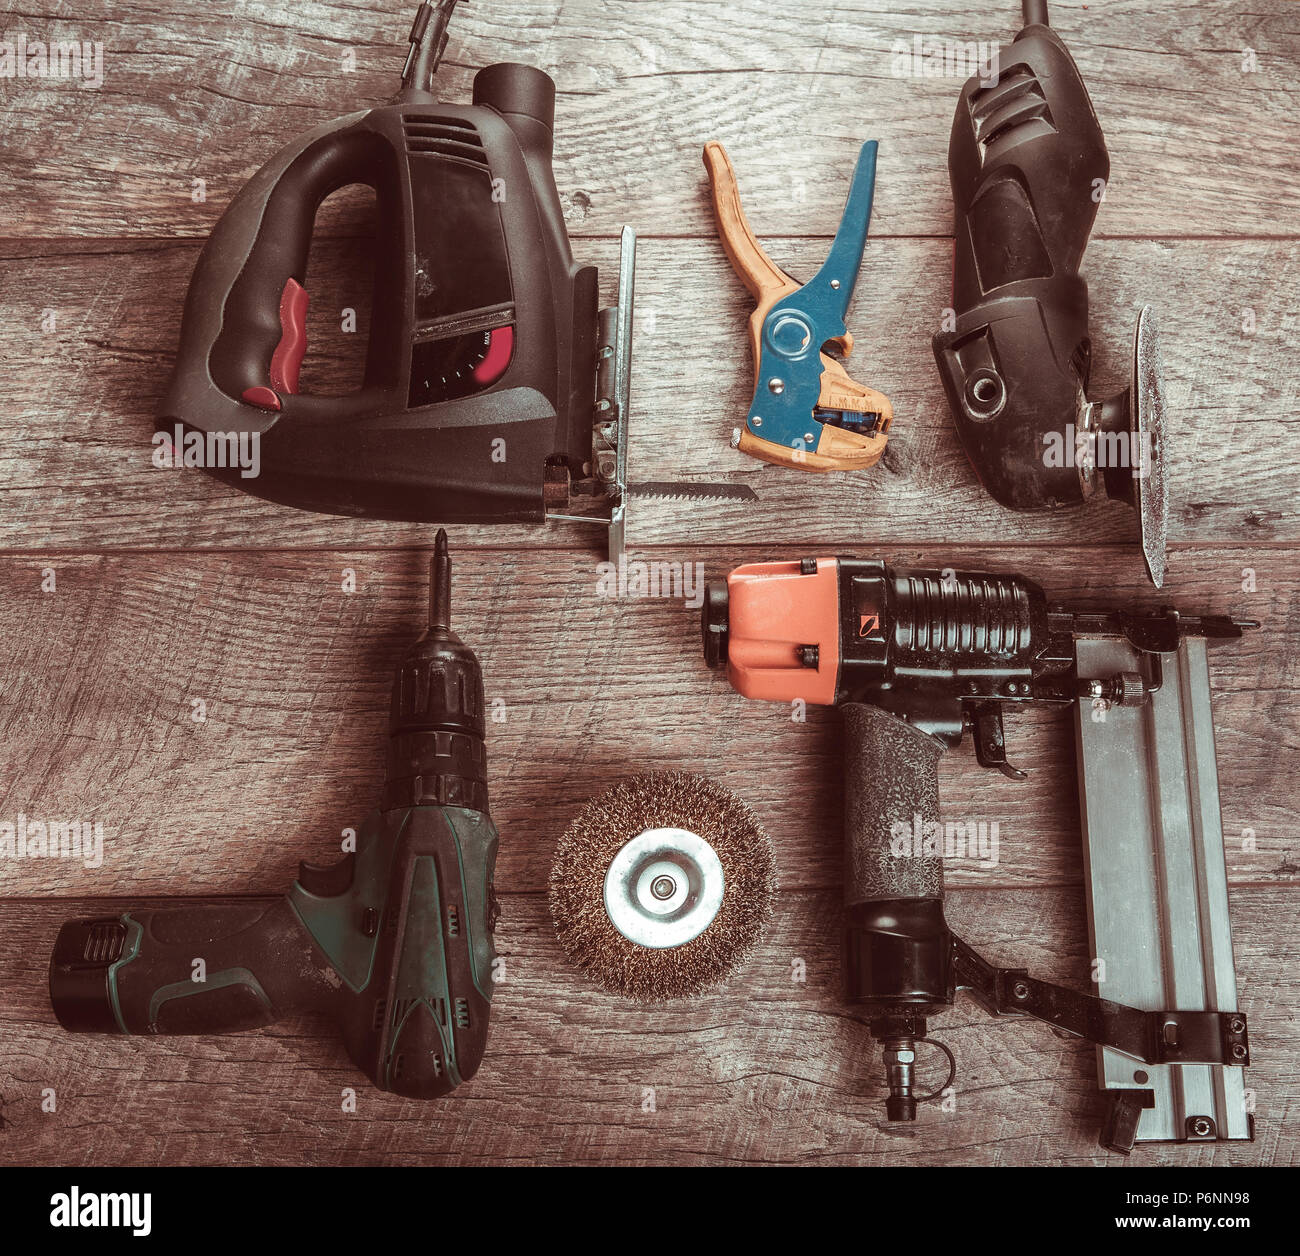 Electric hand tools, screwdriver, Drill Saw jigsaw jointer. Stock Photo